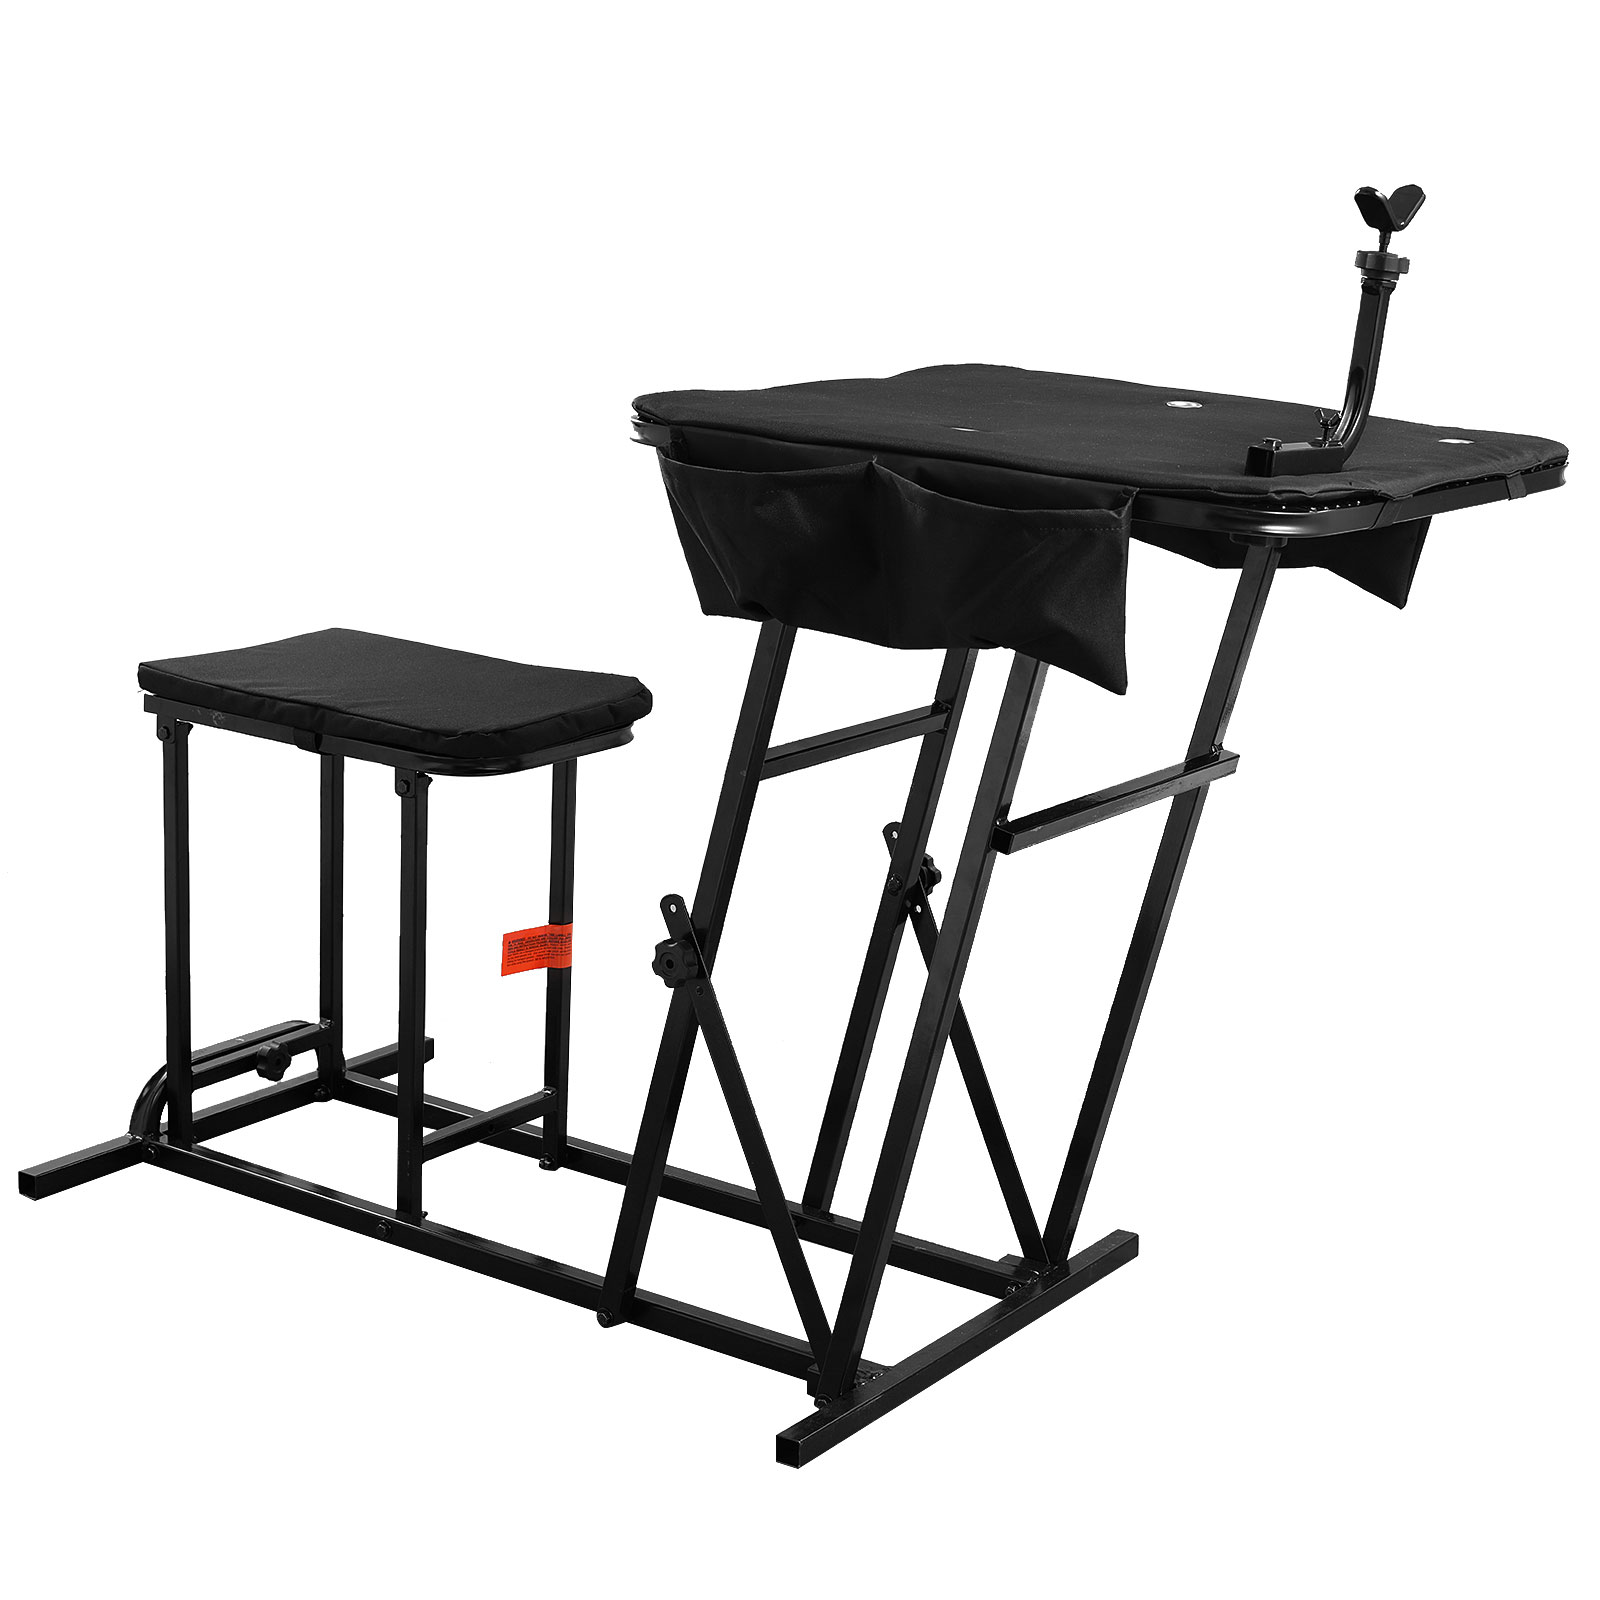 Shooting Chair Table Bench Field Range Rifle Gun Rest Pad